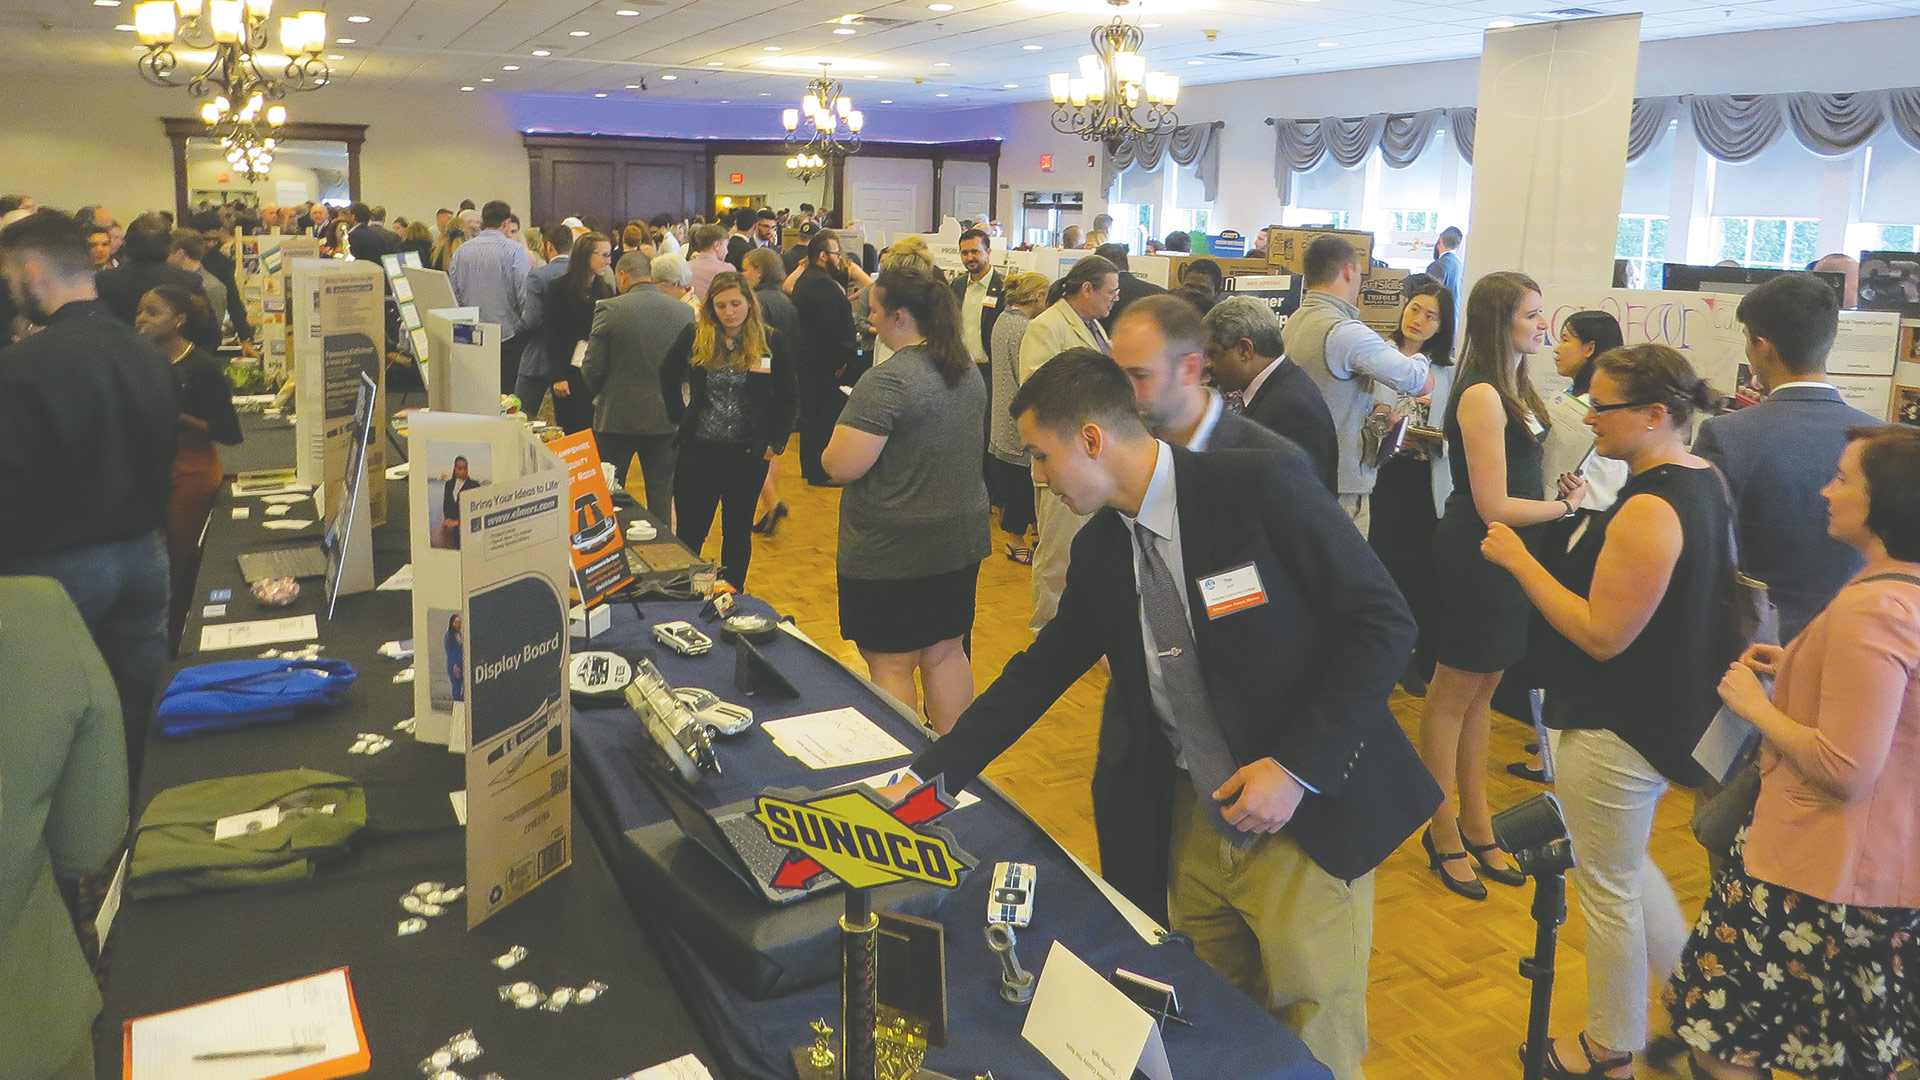 the crowded ballroom floor during the Entrepreneur Showcase